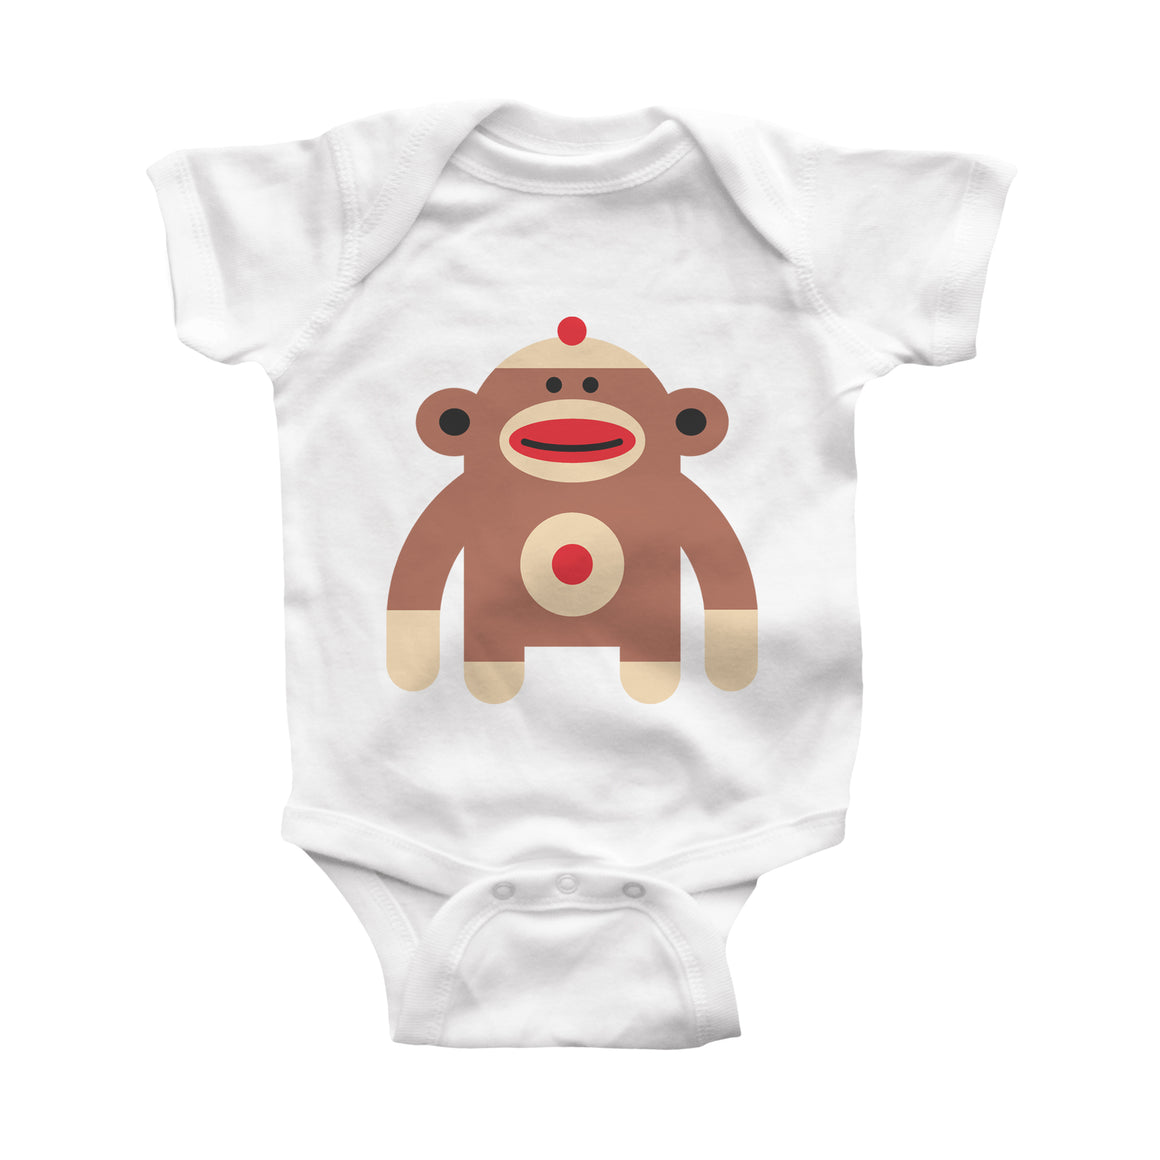 sockmonkey infant bodysuit